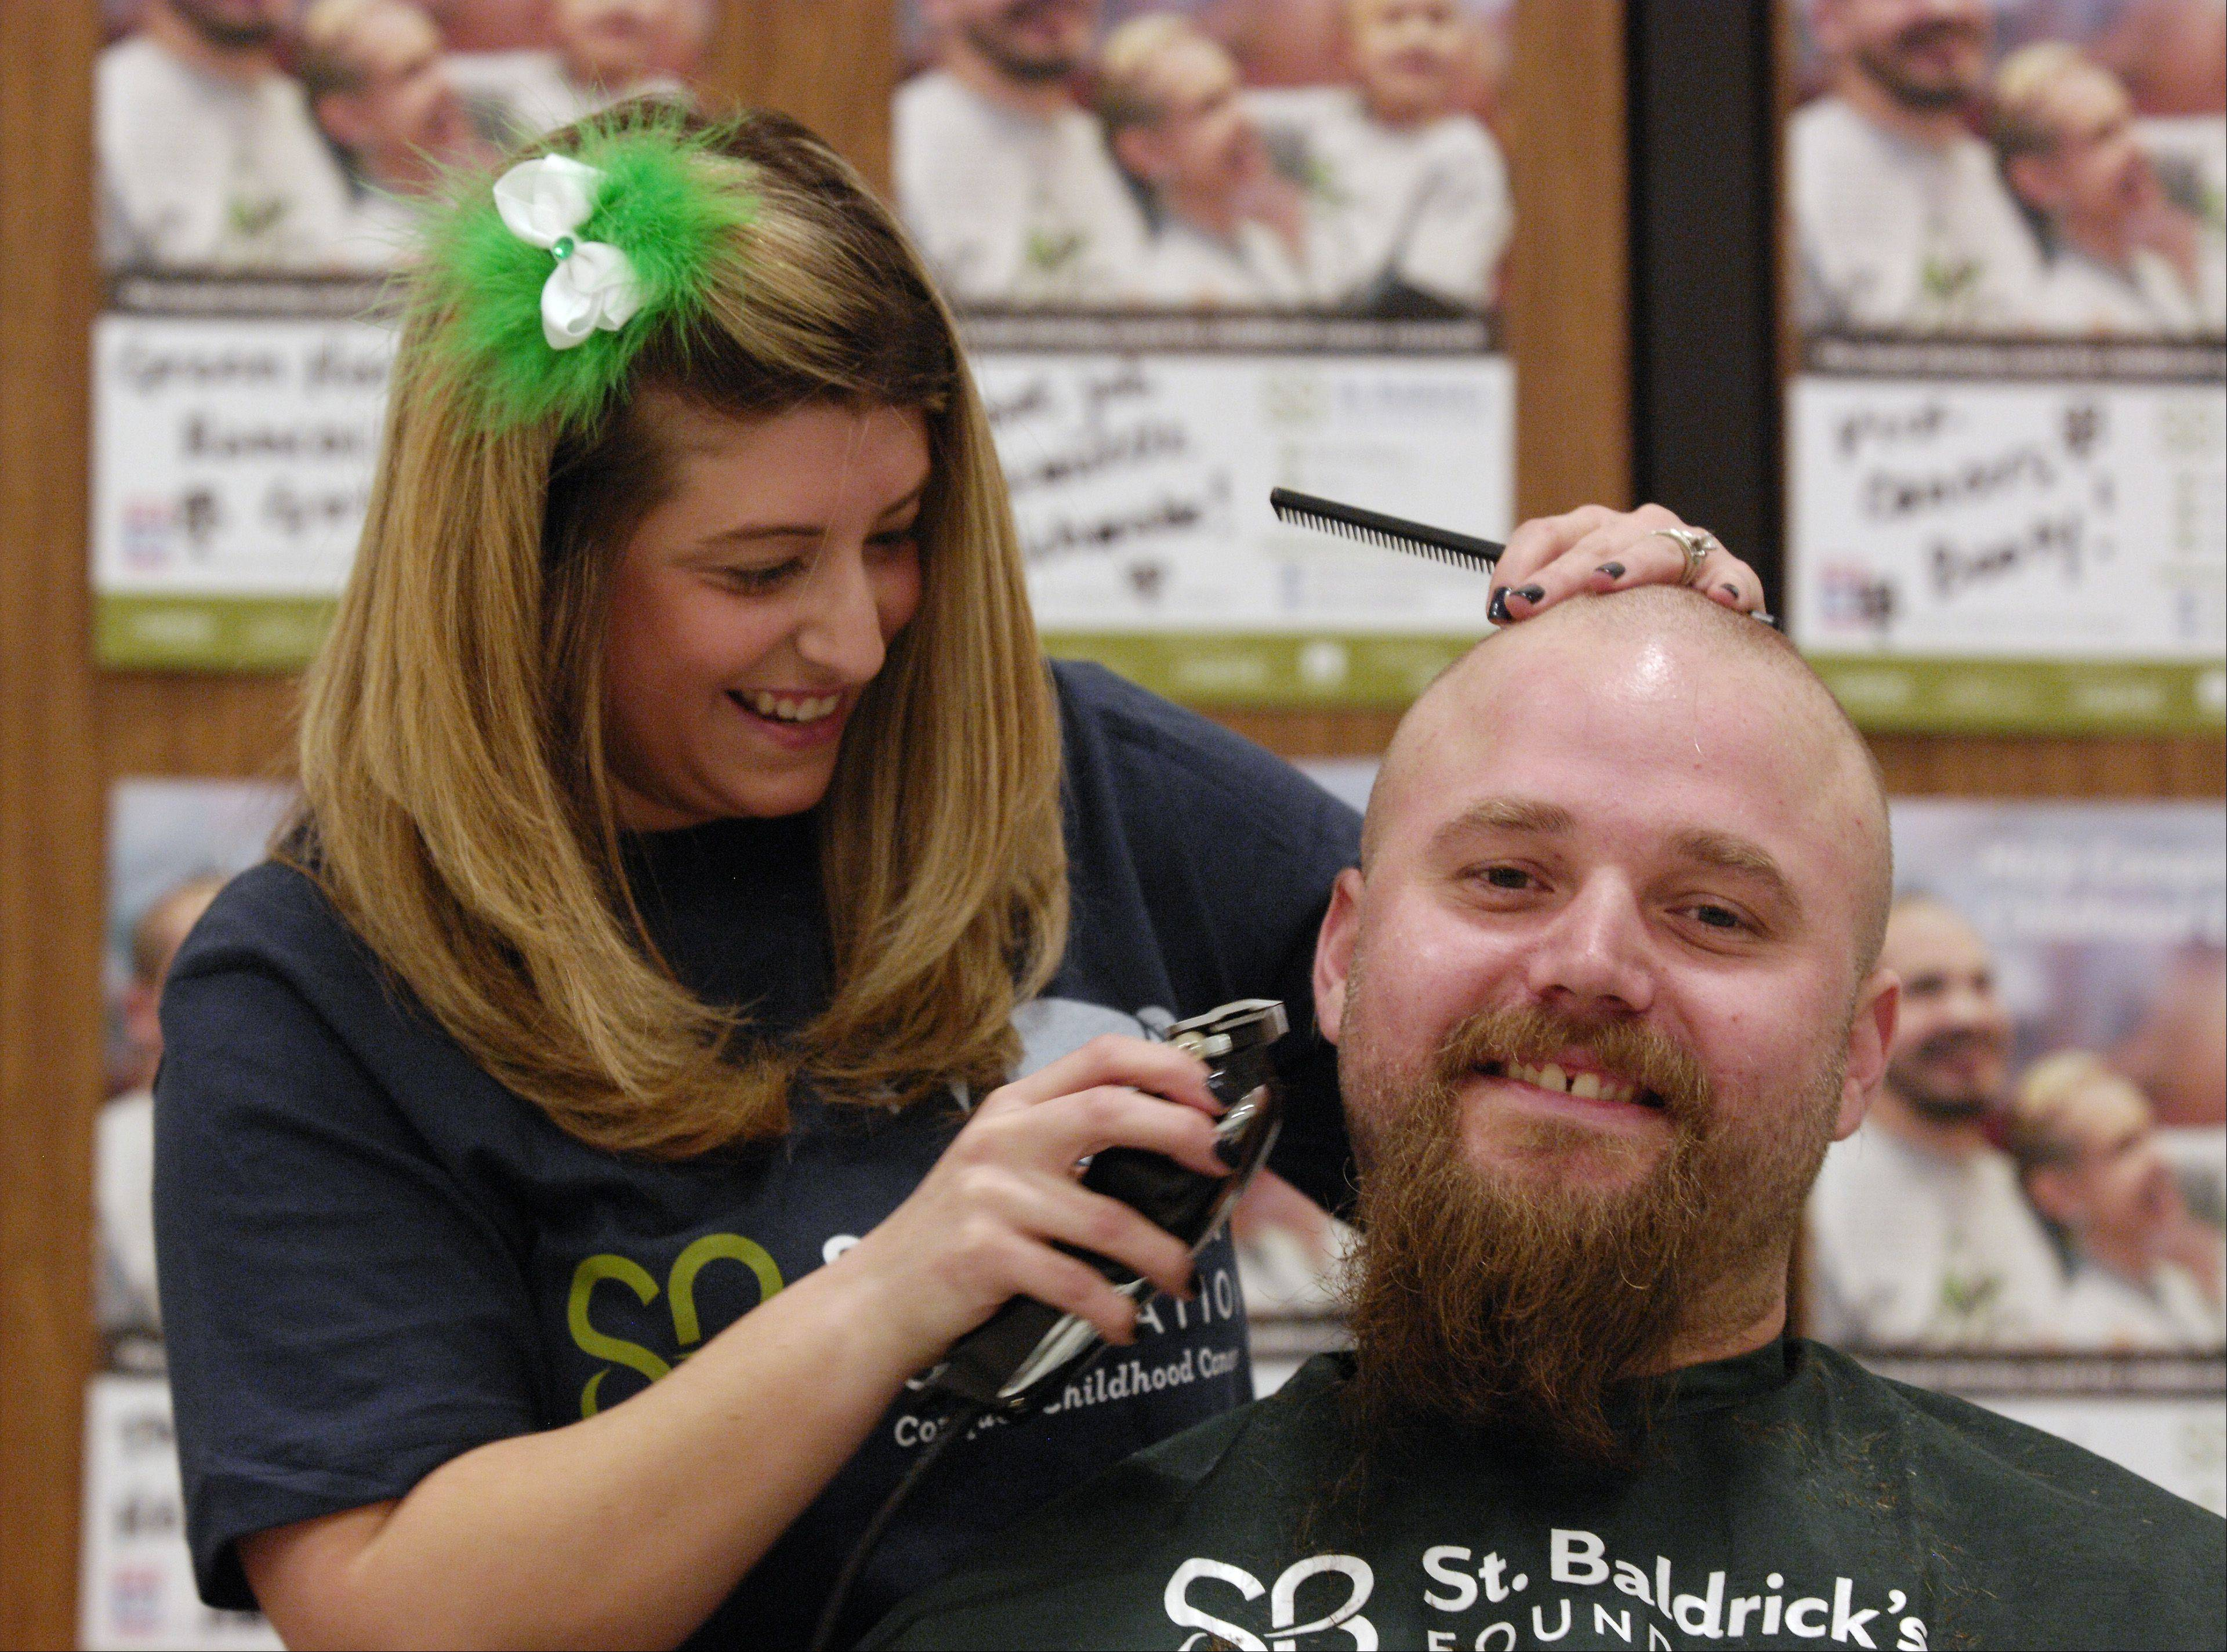 Gina Barzso of Bartlett shaves the head and beard of her husband Dan during the St. Baldrick's Day shaving event at Evergreen Elementary School in Carol Stream. The event honored third grader Jack O'Donoghue, who's cancer is now in remission.